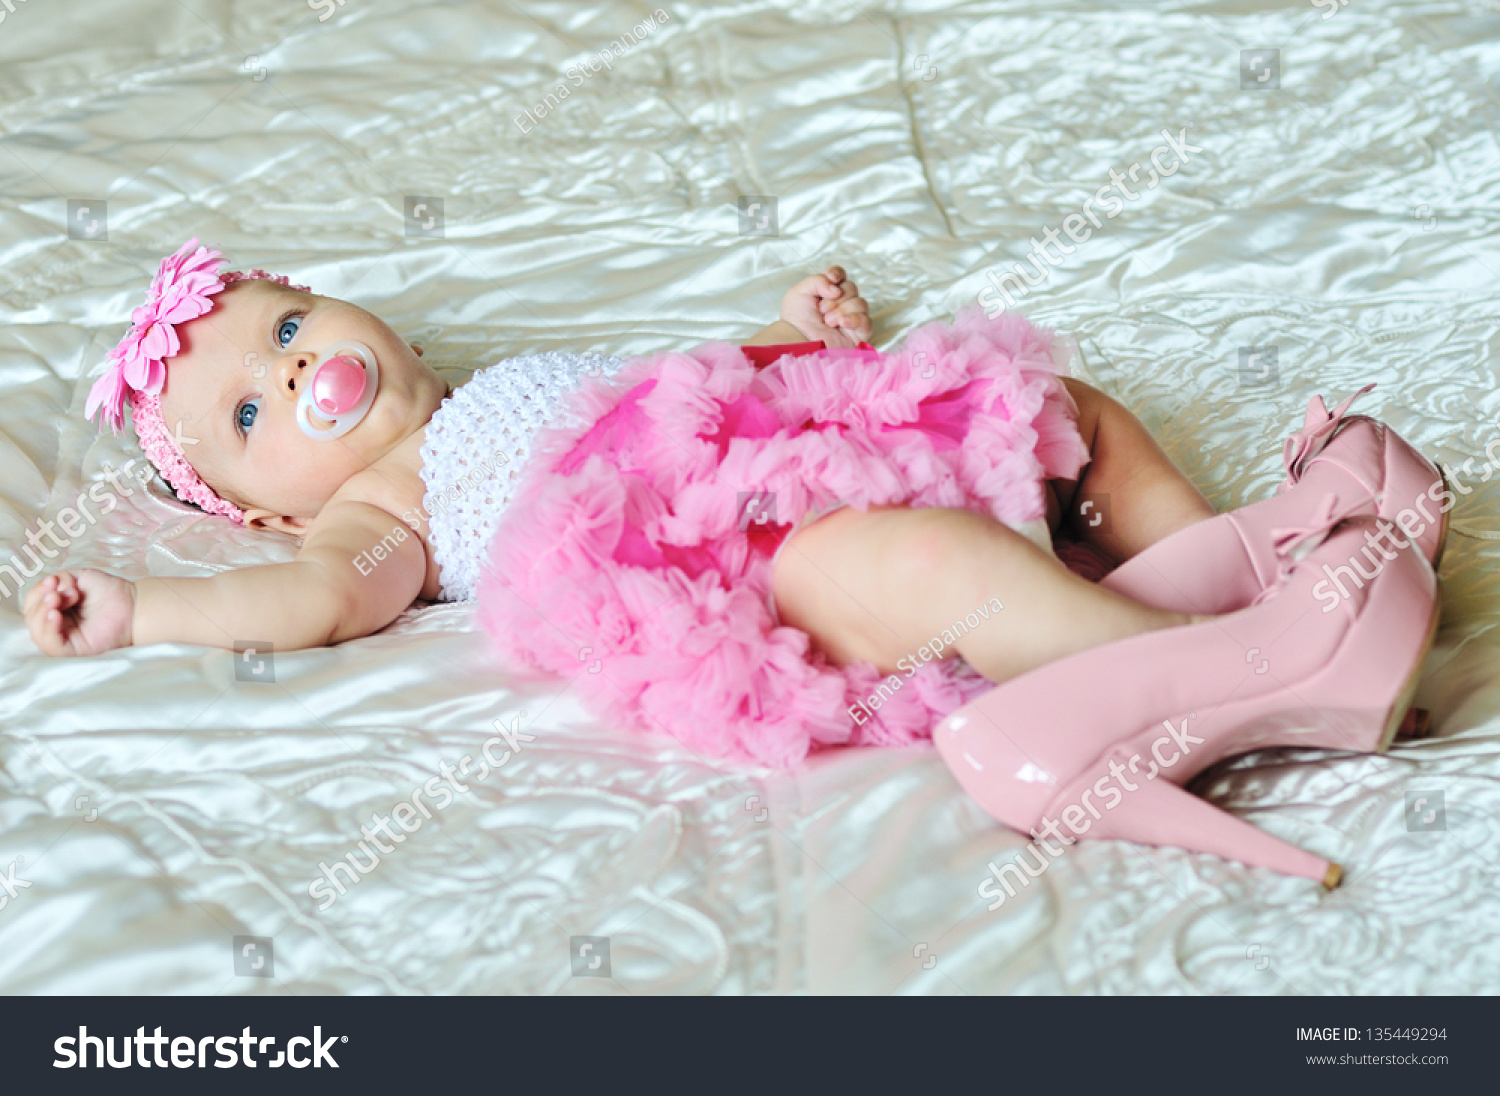 Fashion 3 Months Old Baby Girl Stock Photo 135449294 - Shutterstock